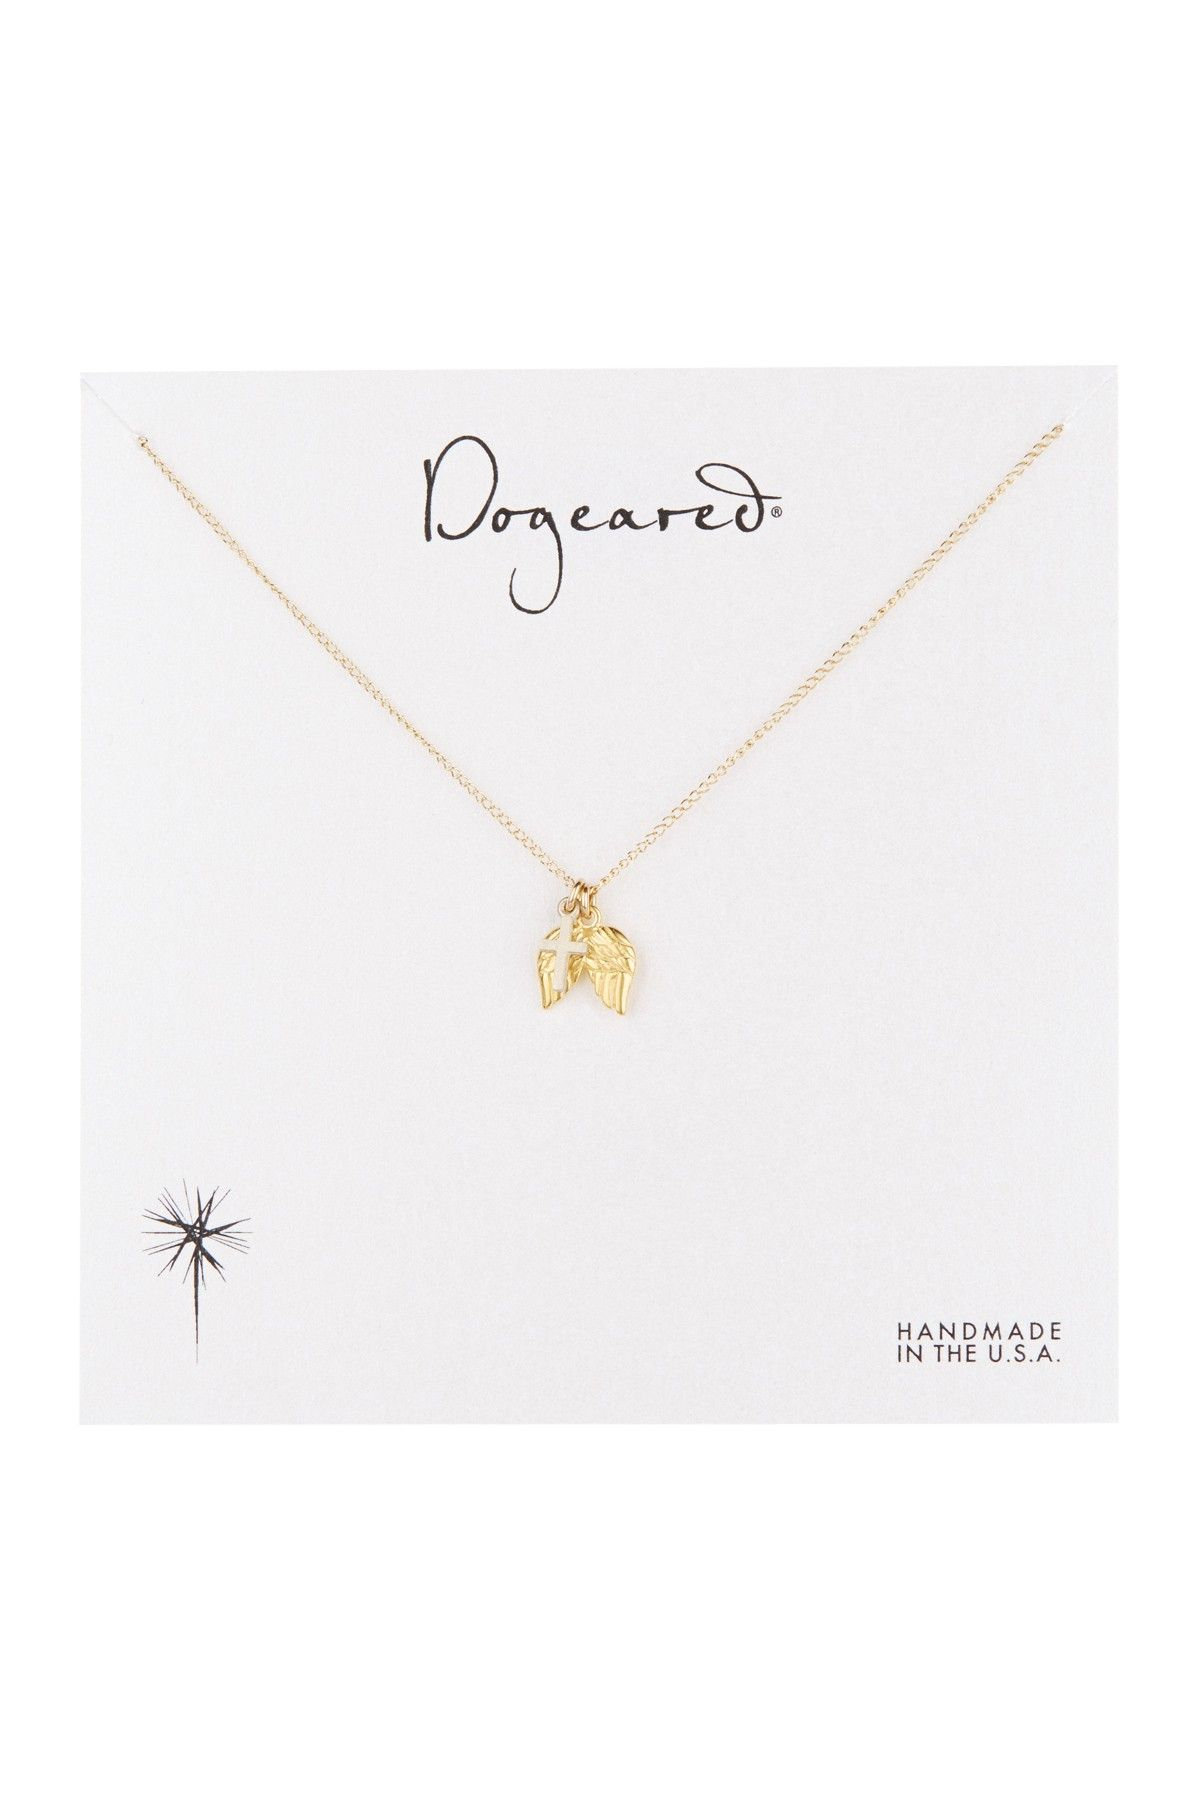 Dogeared Believe With All Your Soul Necklace On Hautelook